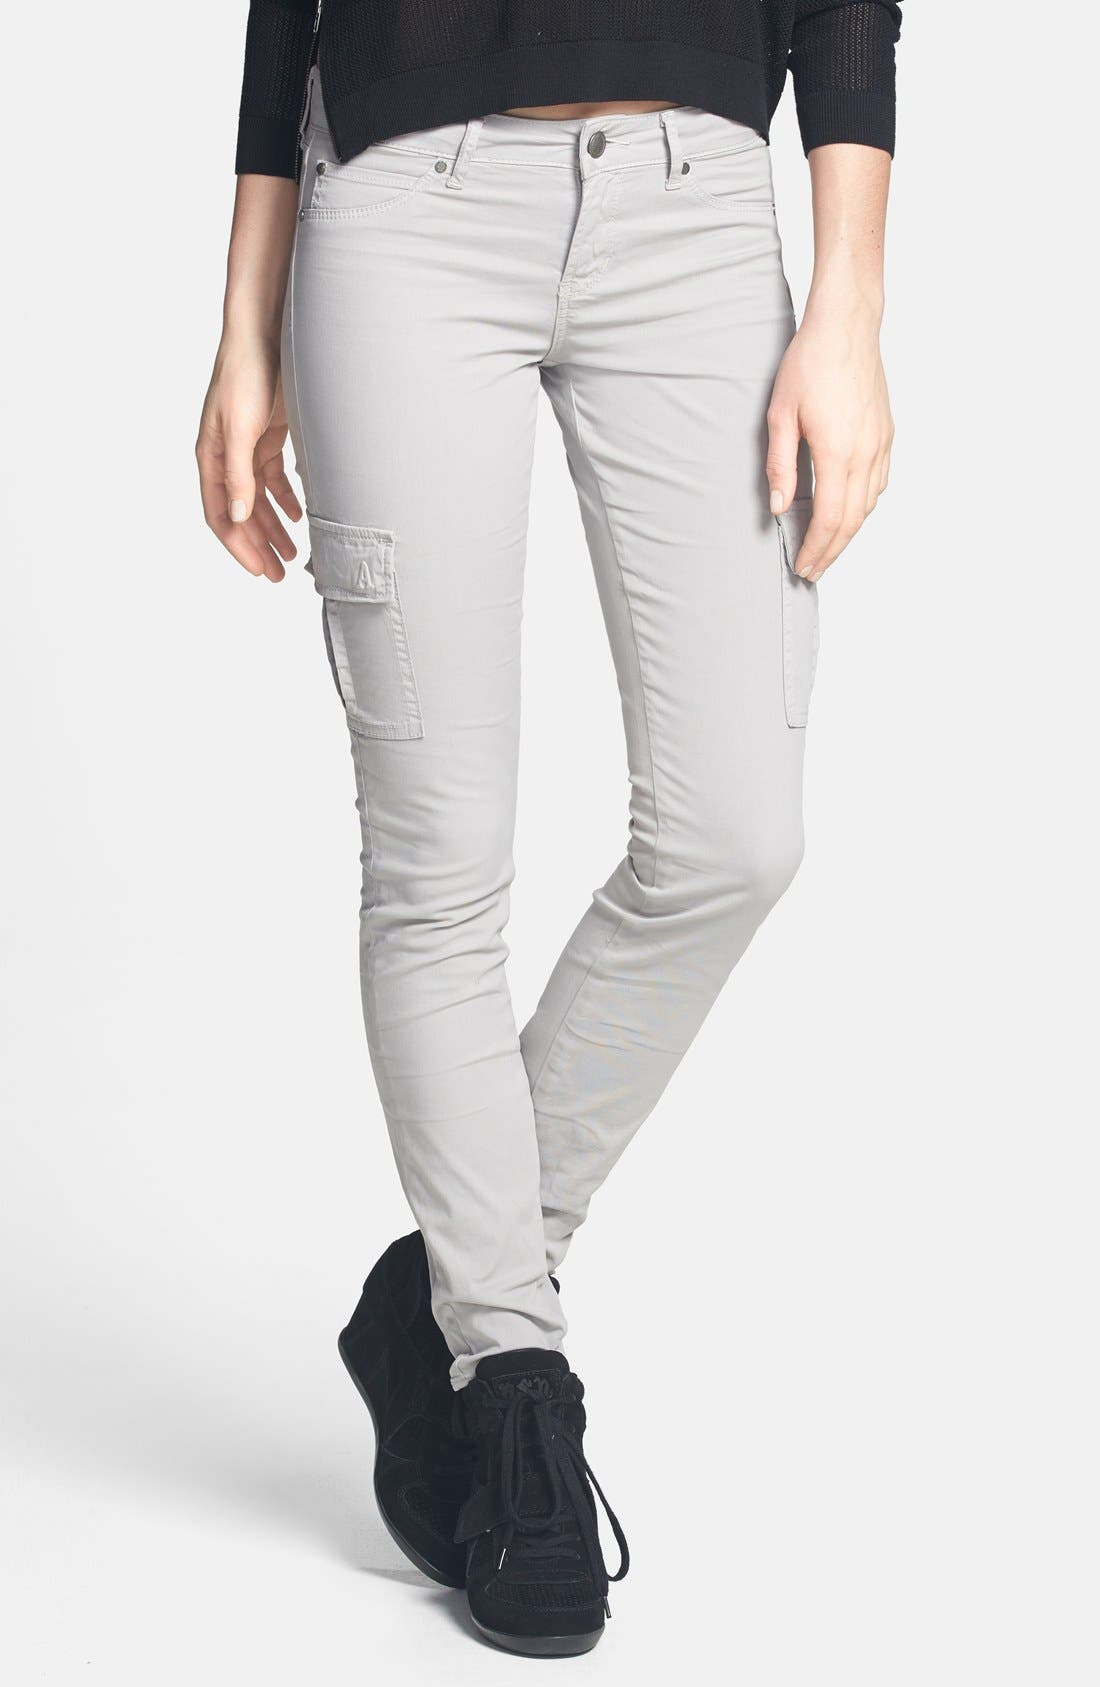 Alternate Image 1 Selected - Articles of Society 'Mya' Cargo Skinny Jeans (Grey) (Juniors) (Online Only)